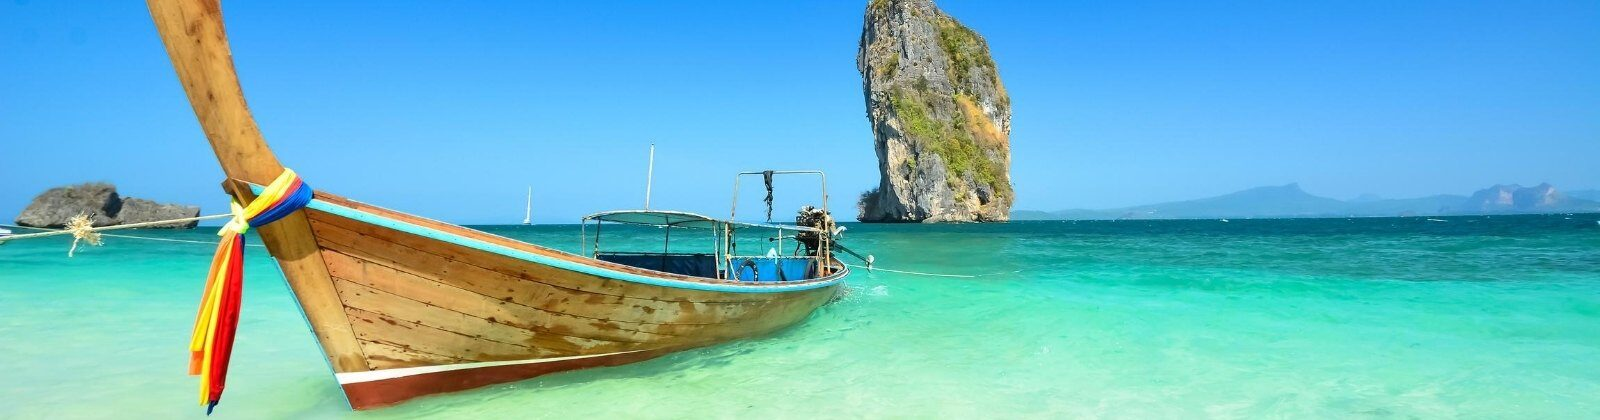 wooden boat on turquoise water in thailand